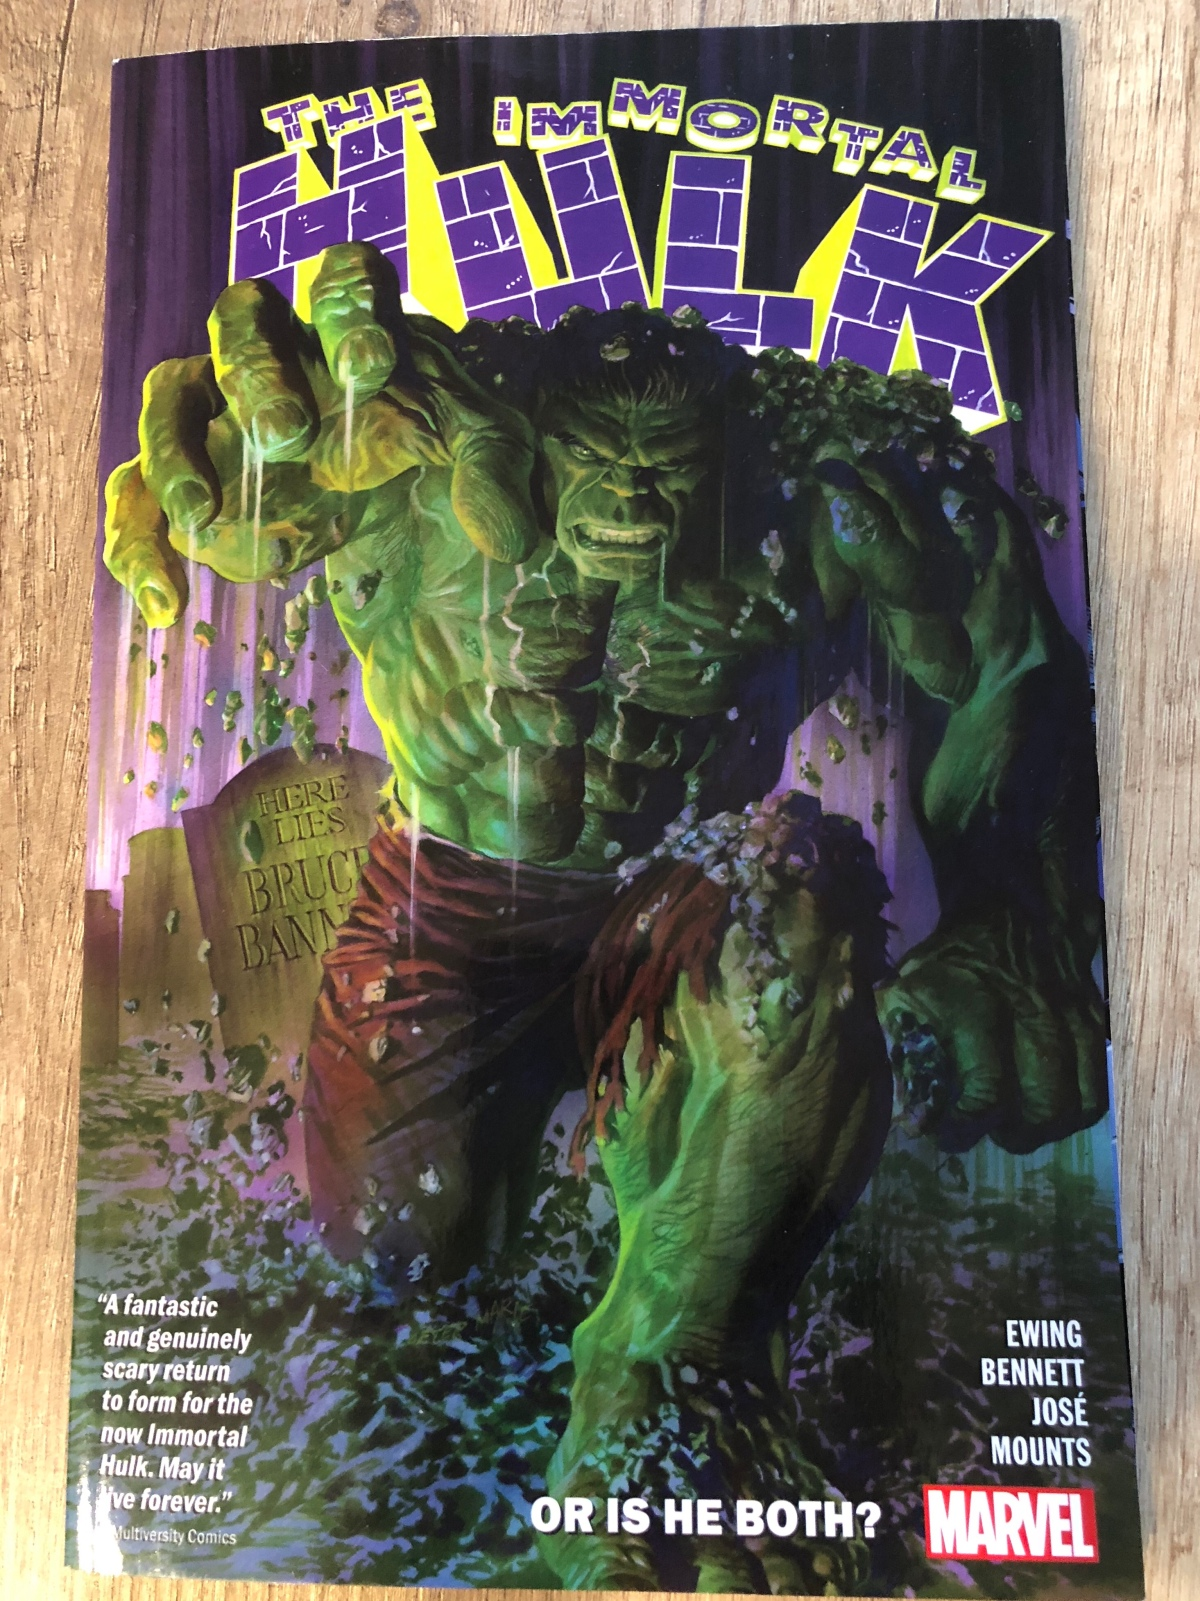 The Immortal Hulk Vol. 1: Or is he both? |Review